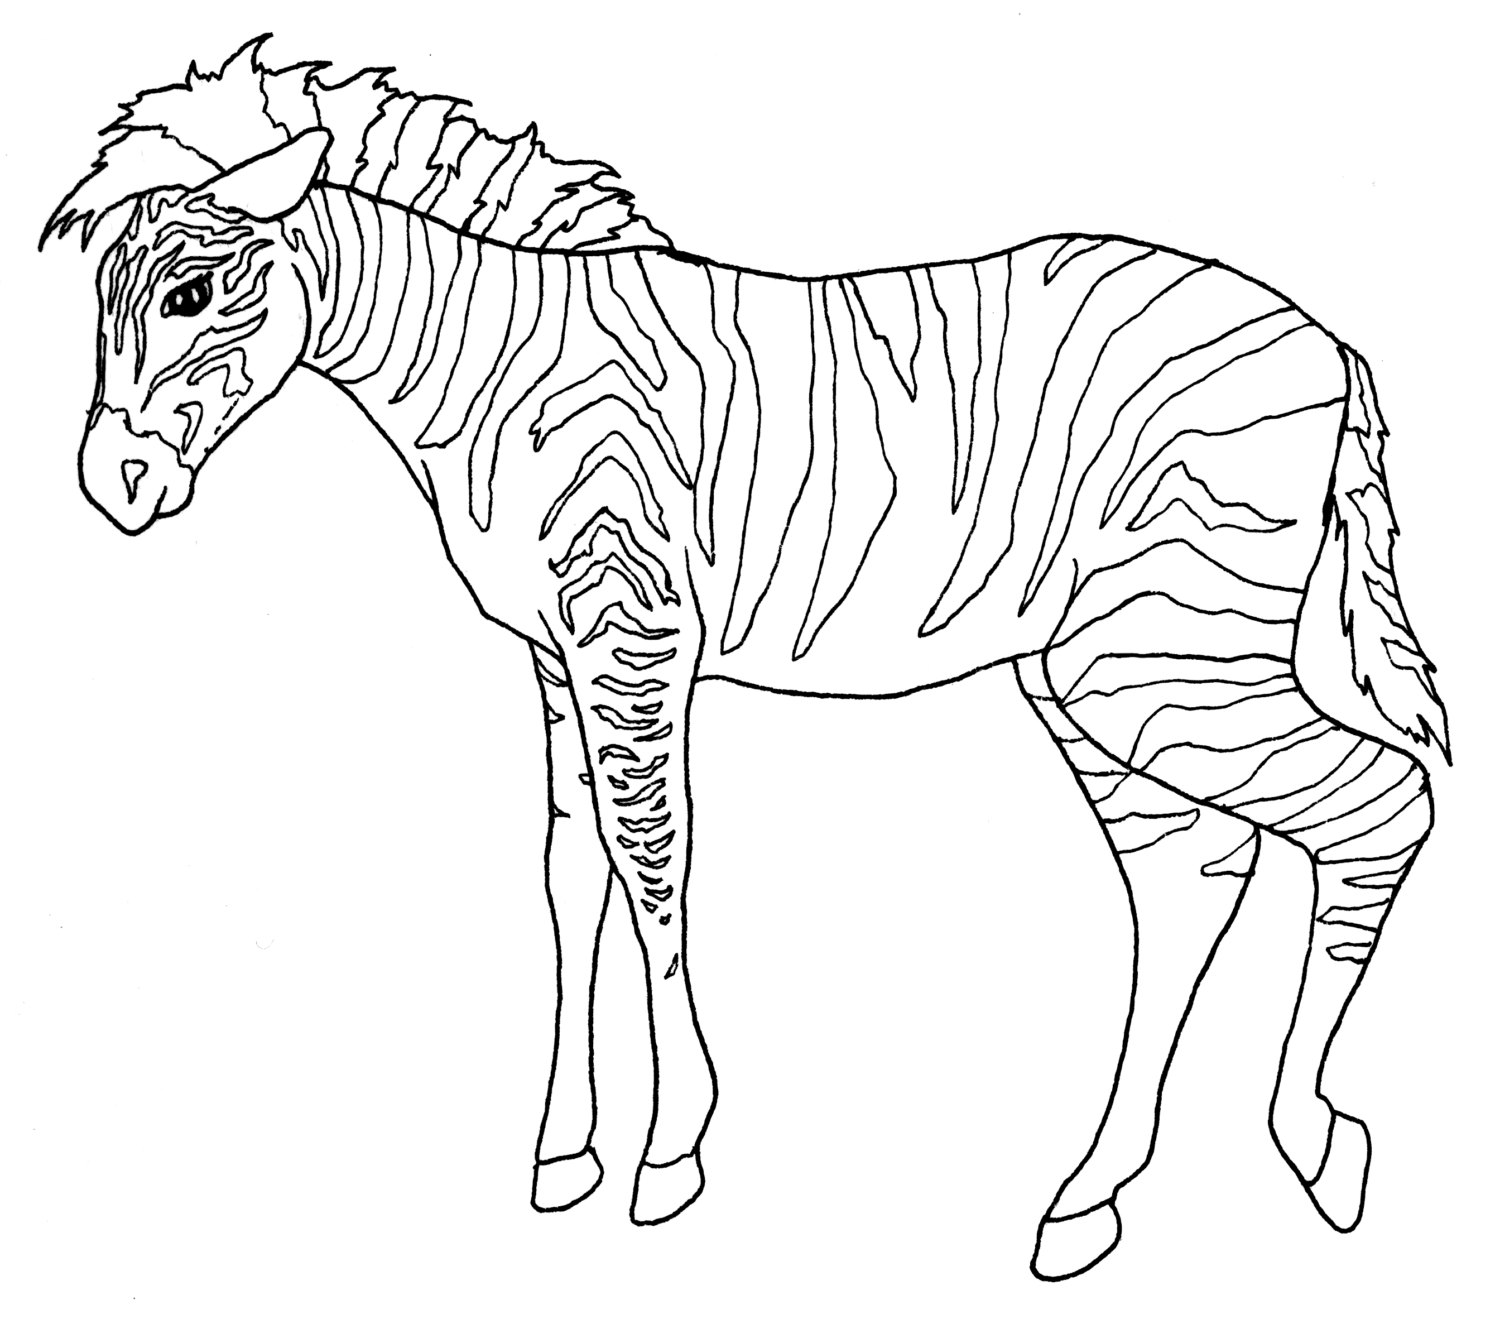 zoo animal coloring zoo animal coloring pages free download on clipartmag animal zoo coloring